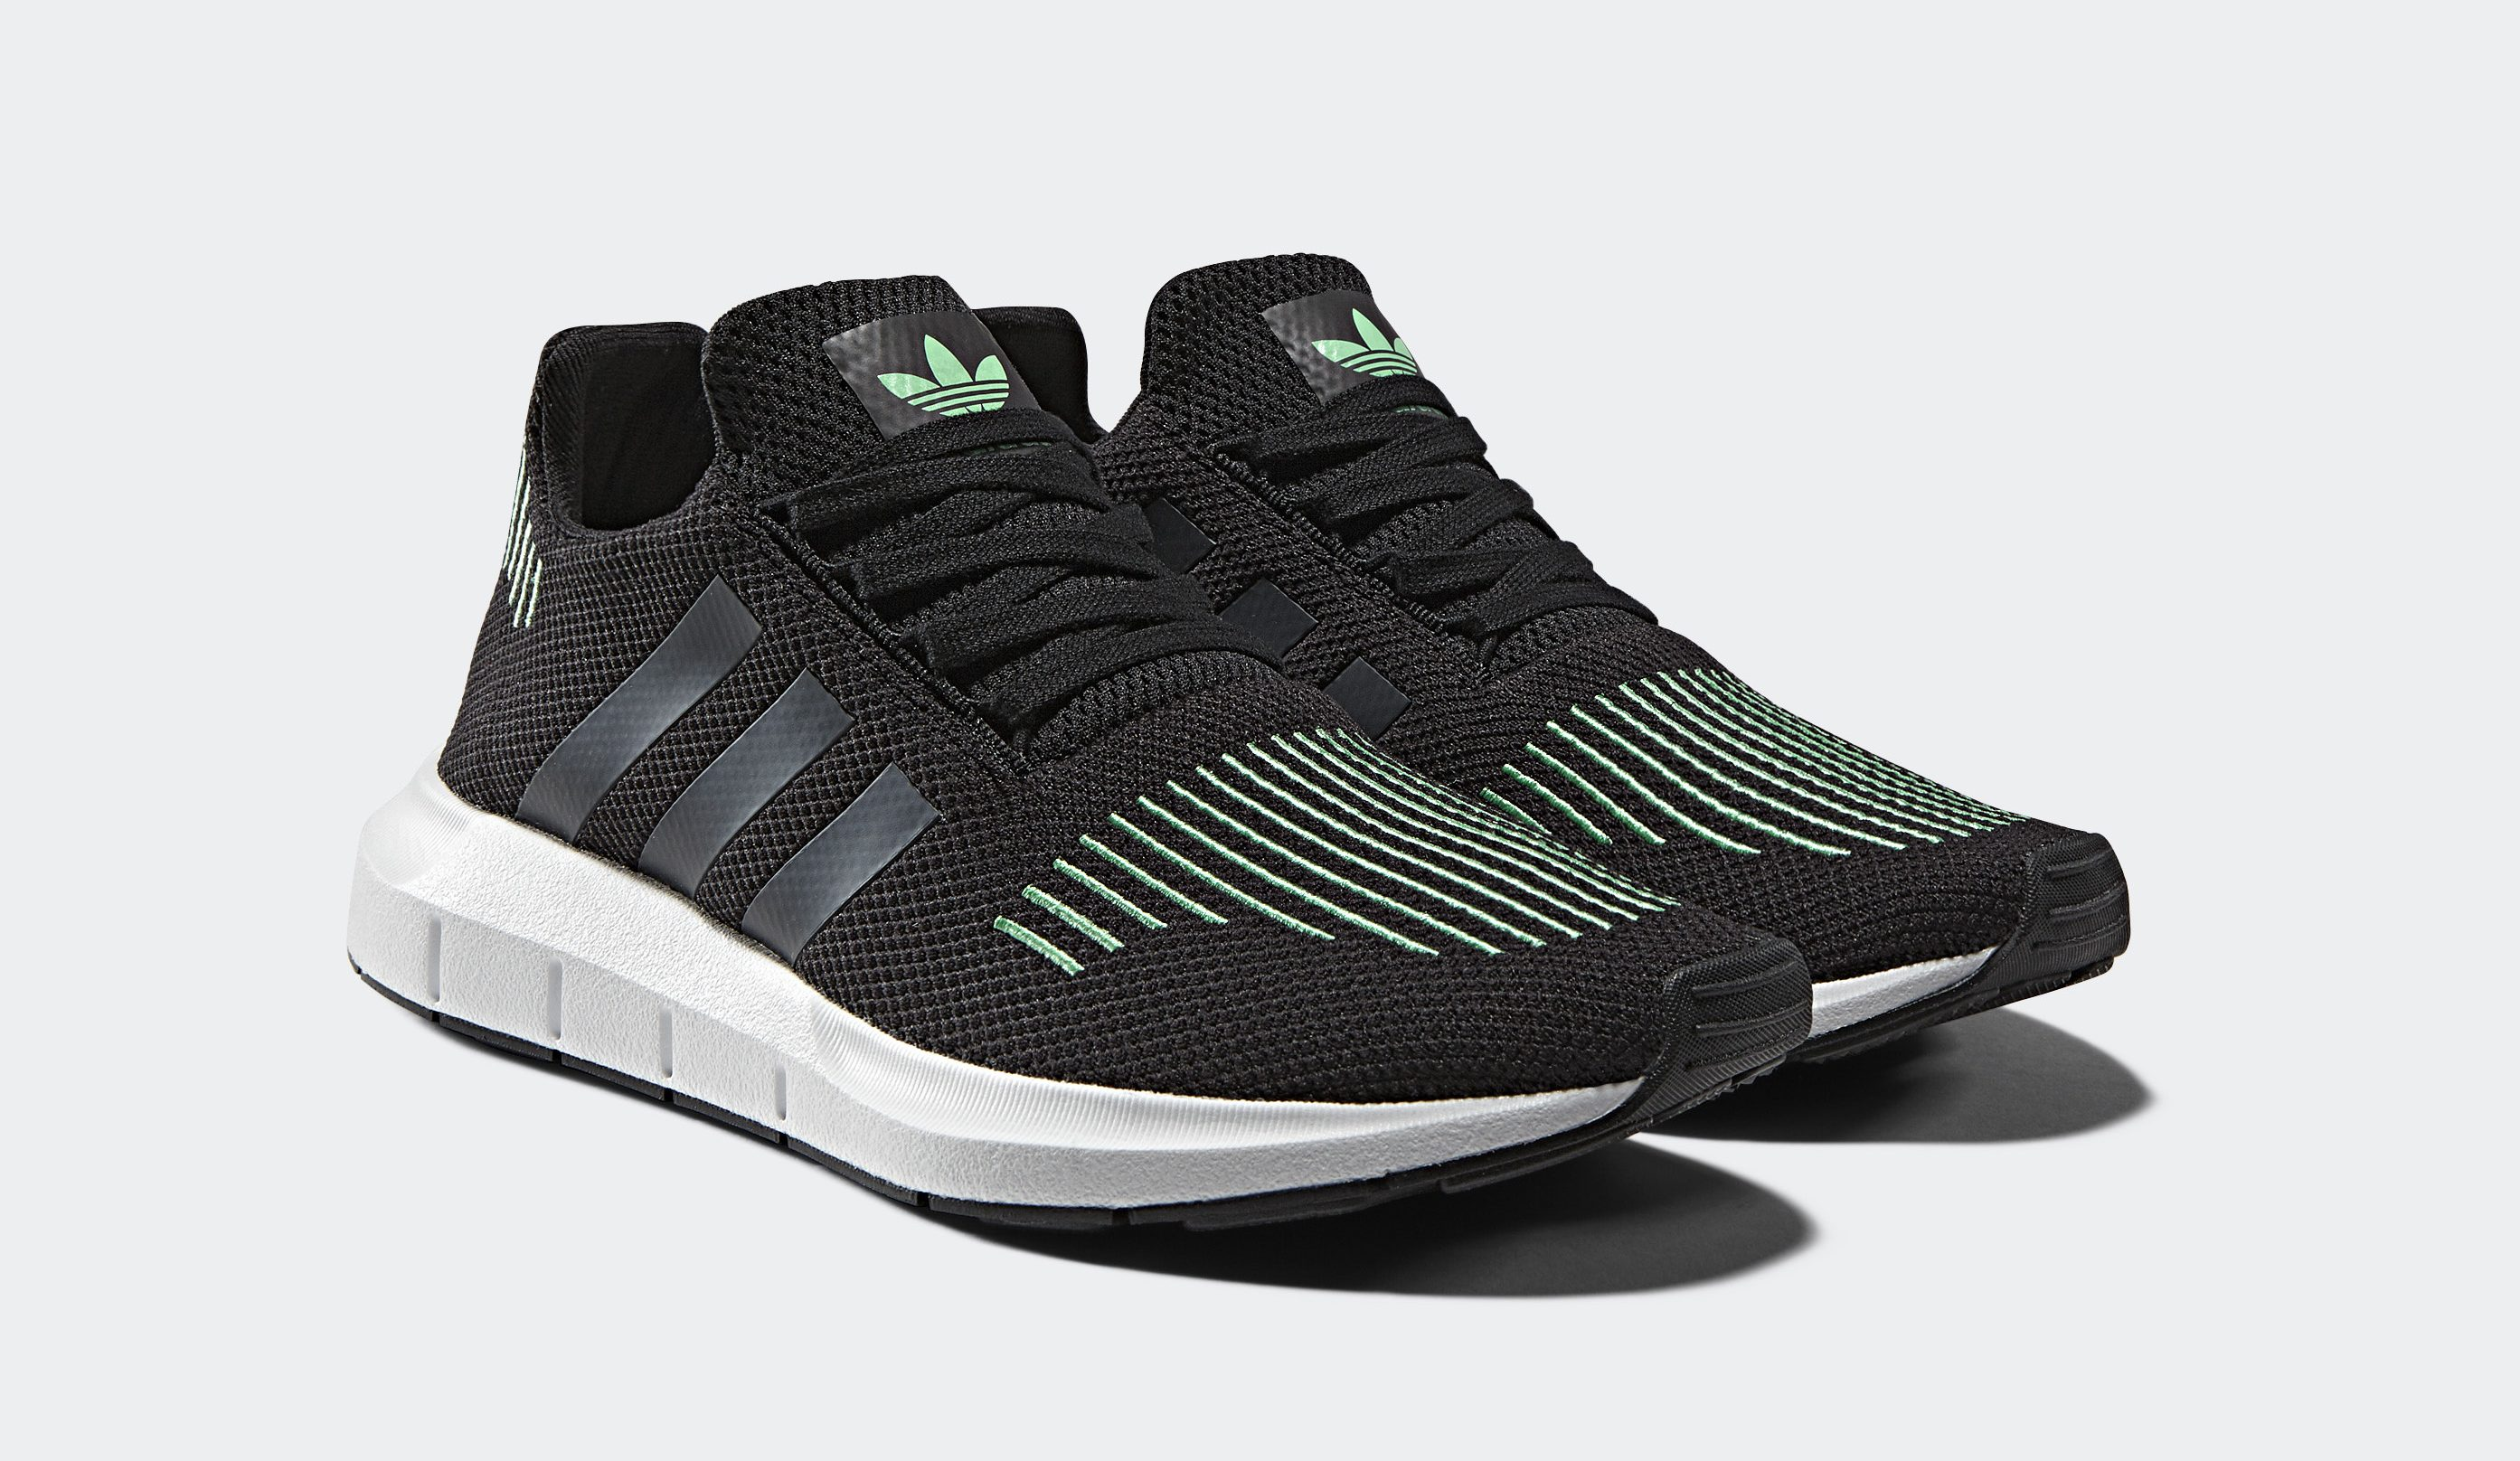 e2b464fdddb2 The New adidas Swift Run Releases in Singapore on July 27